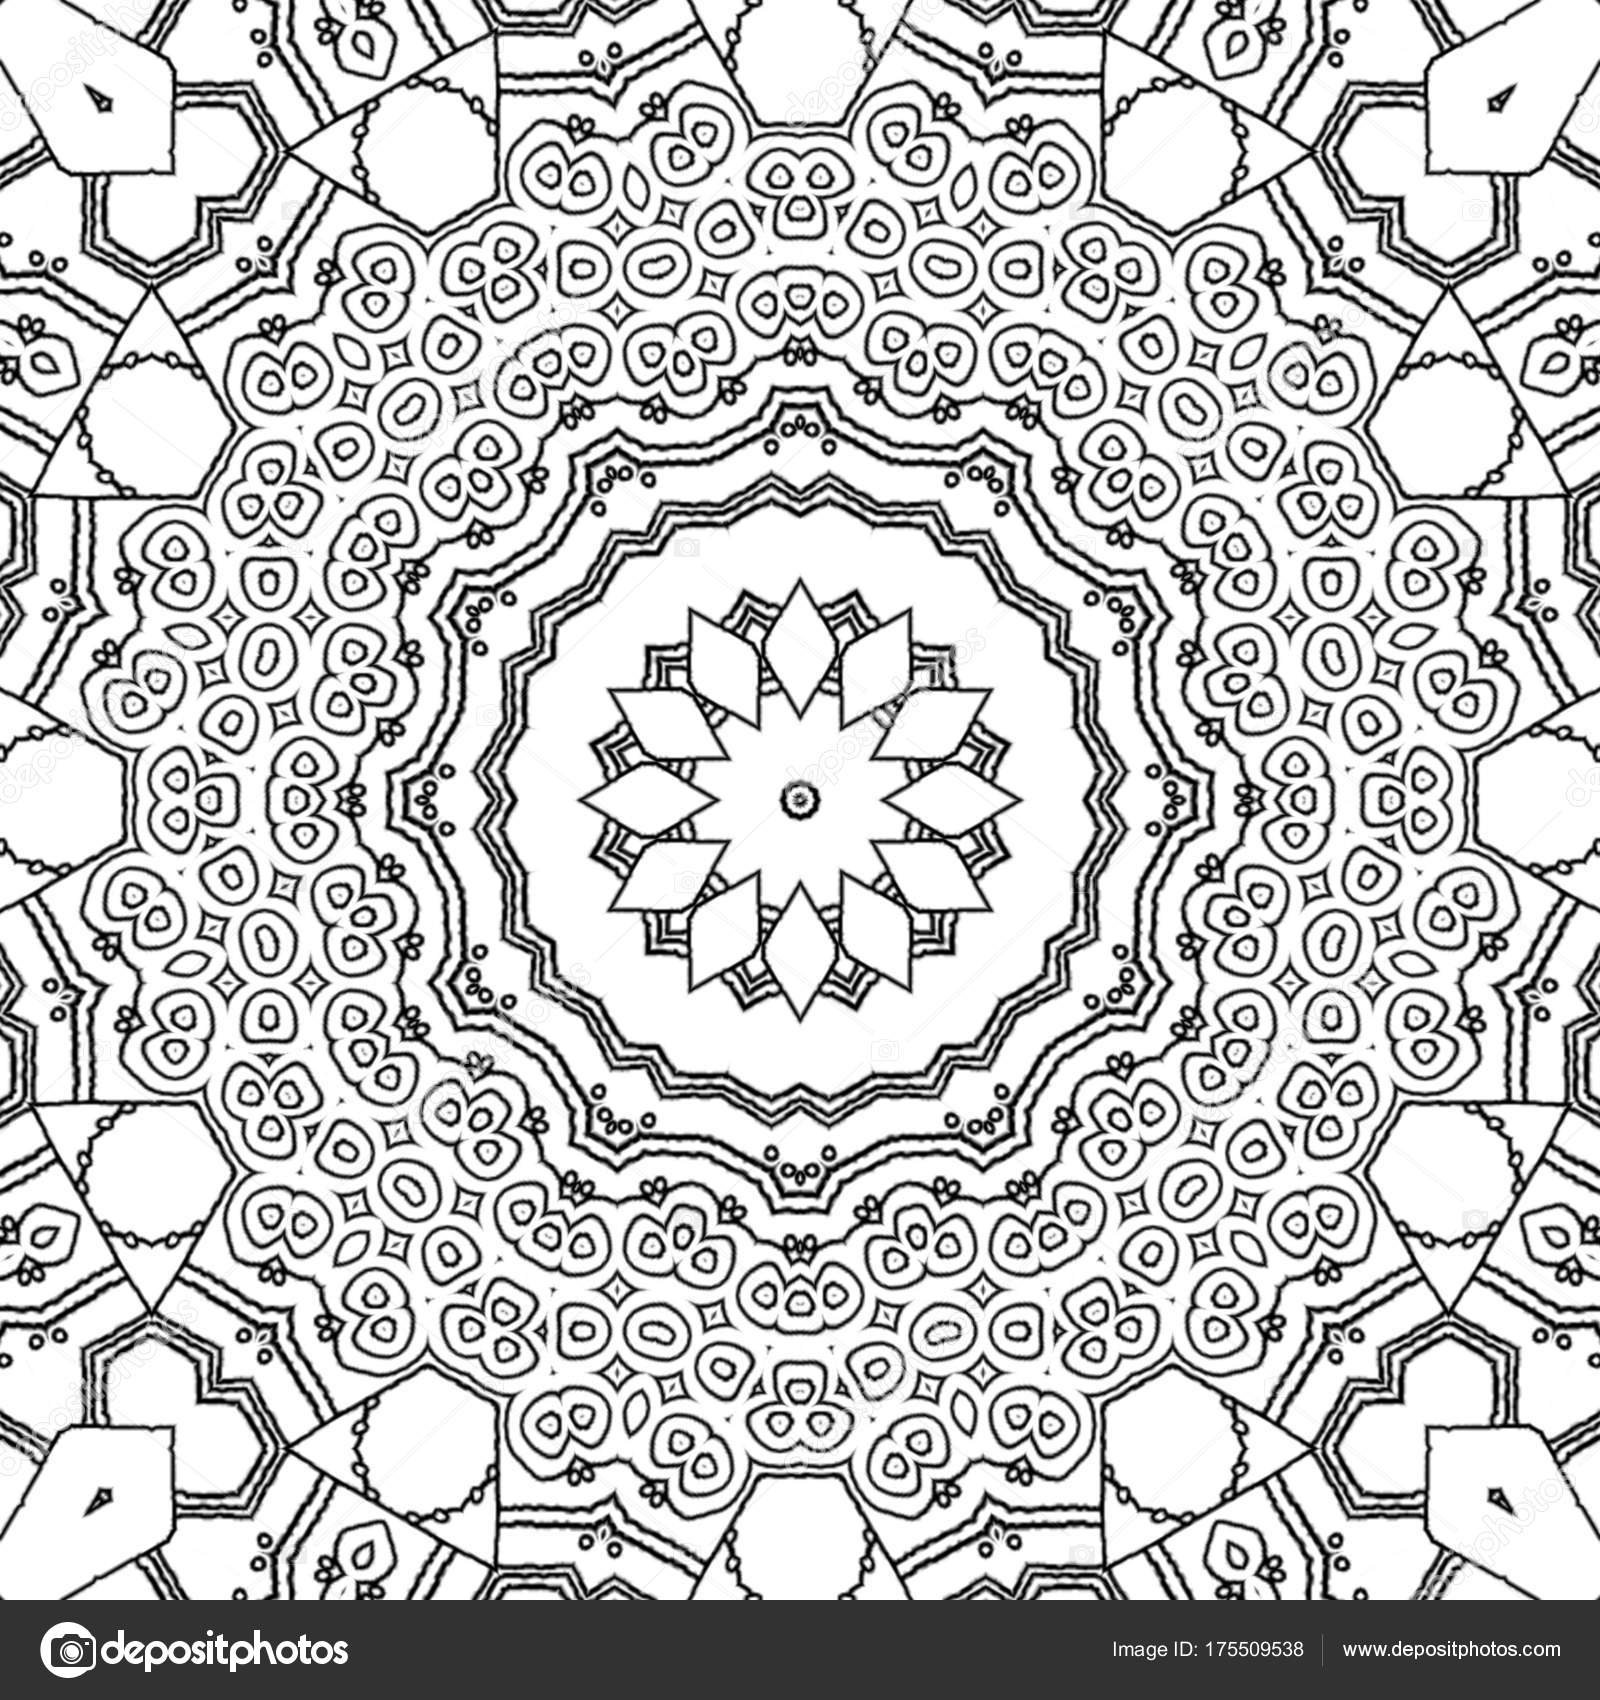 Abstract Coloring Page Drawing Monochrome Mandala Ornament Ornate ...